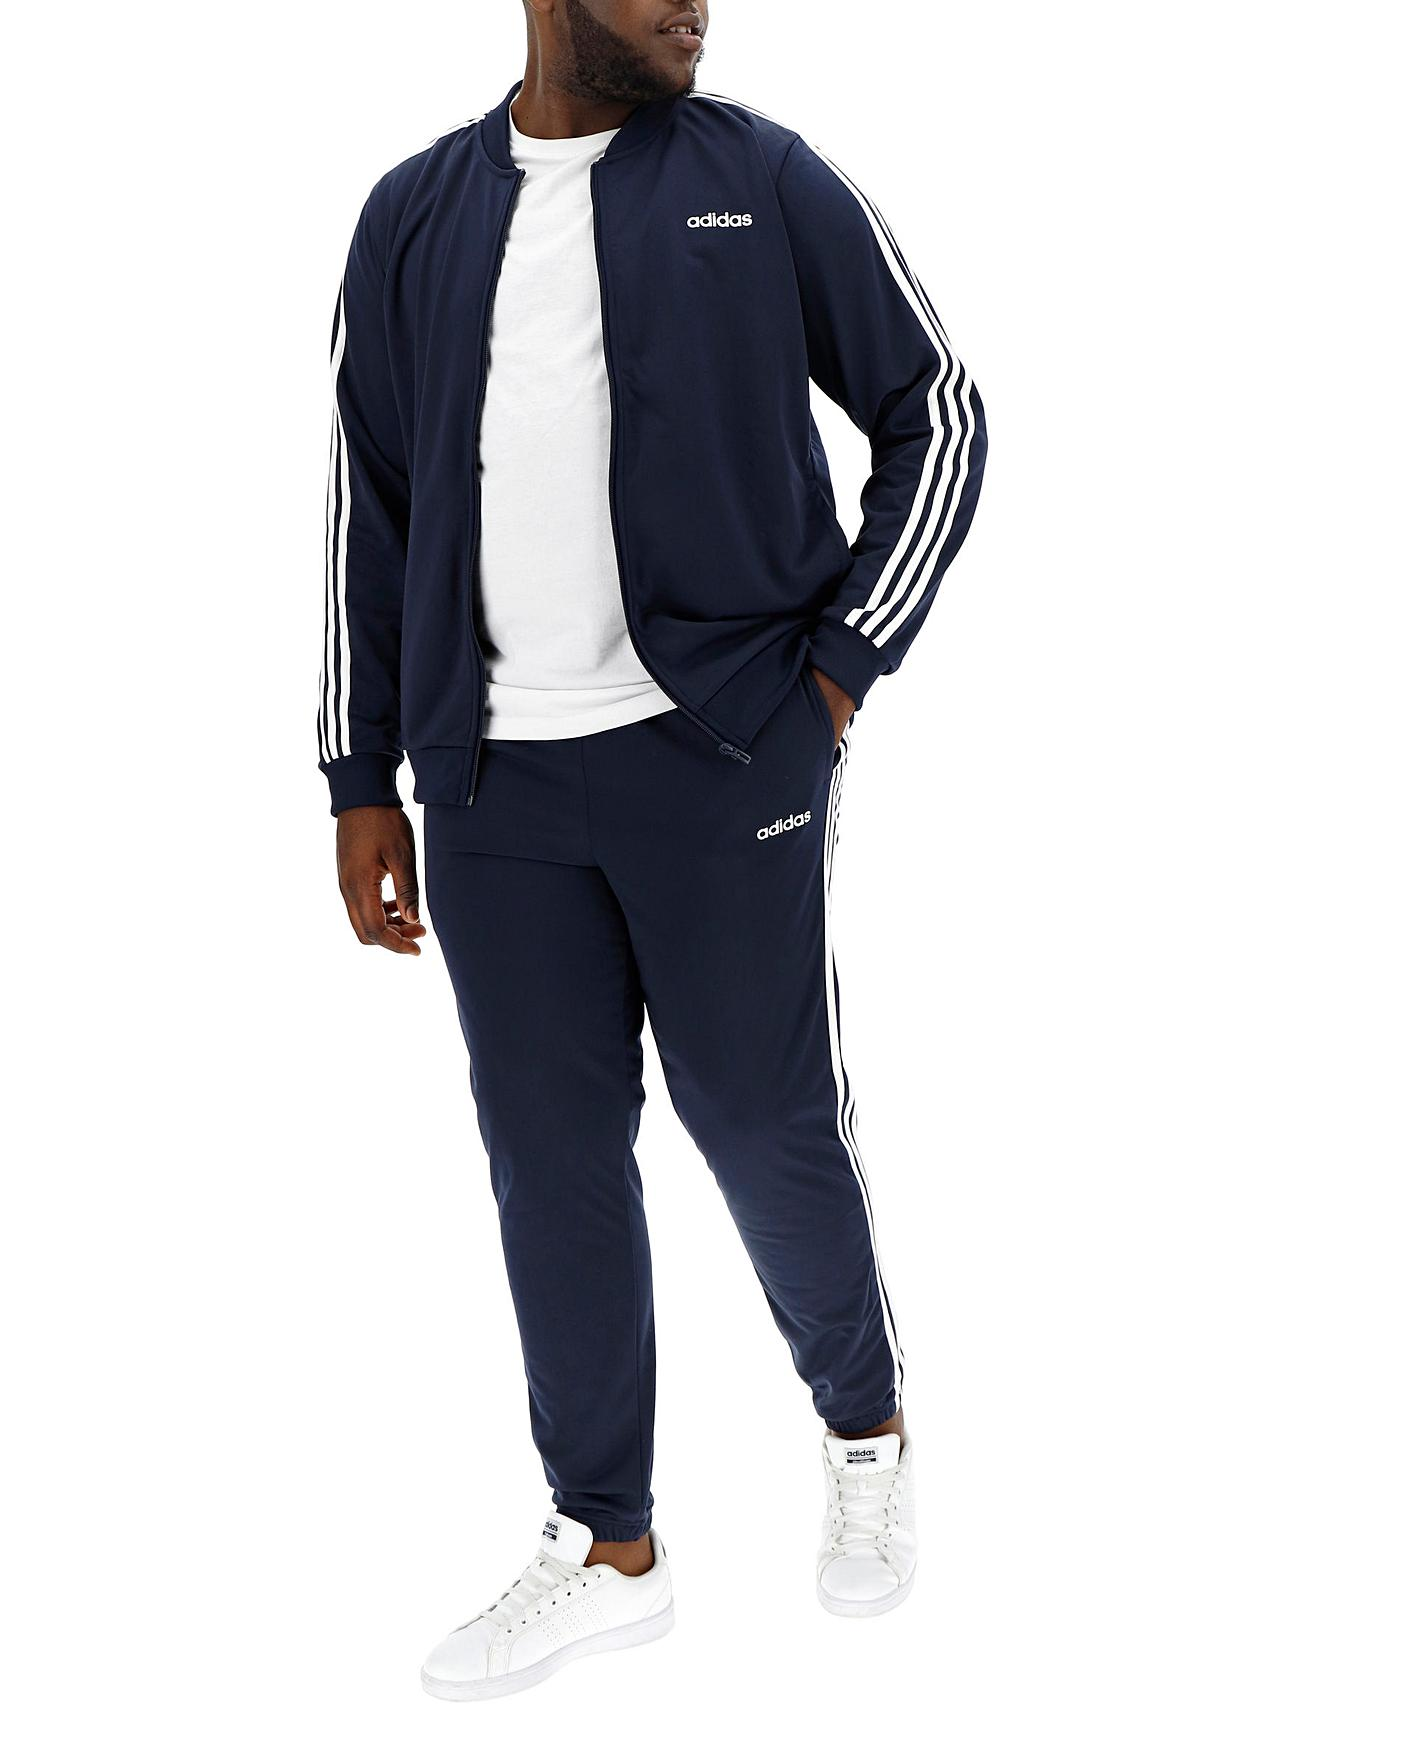 new release great fit hot new products adidas Back to Basics 3 Stripe Tracksuit